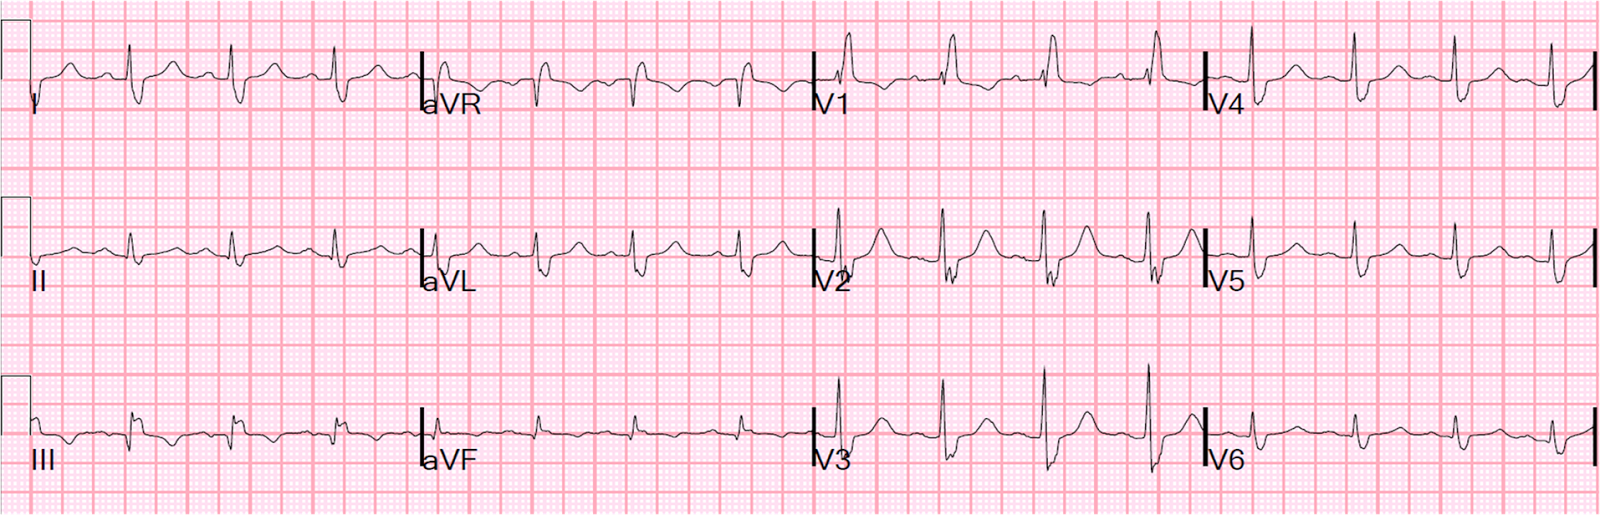 Dr. Smith's ECG Blog: PseudoSTEMI and True ST elevation in Right ...